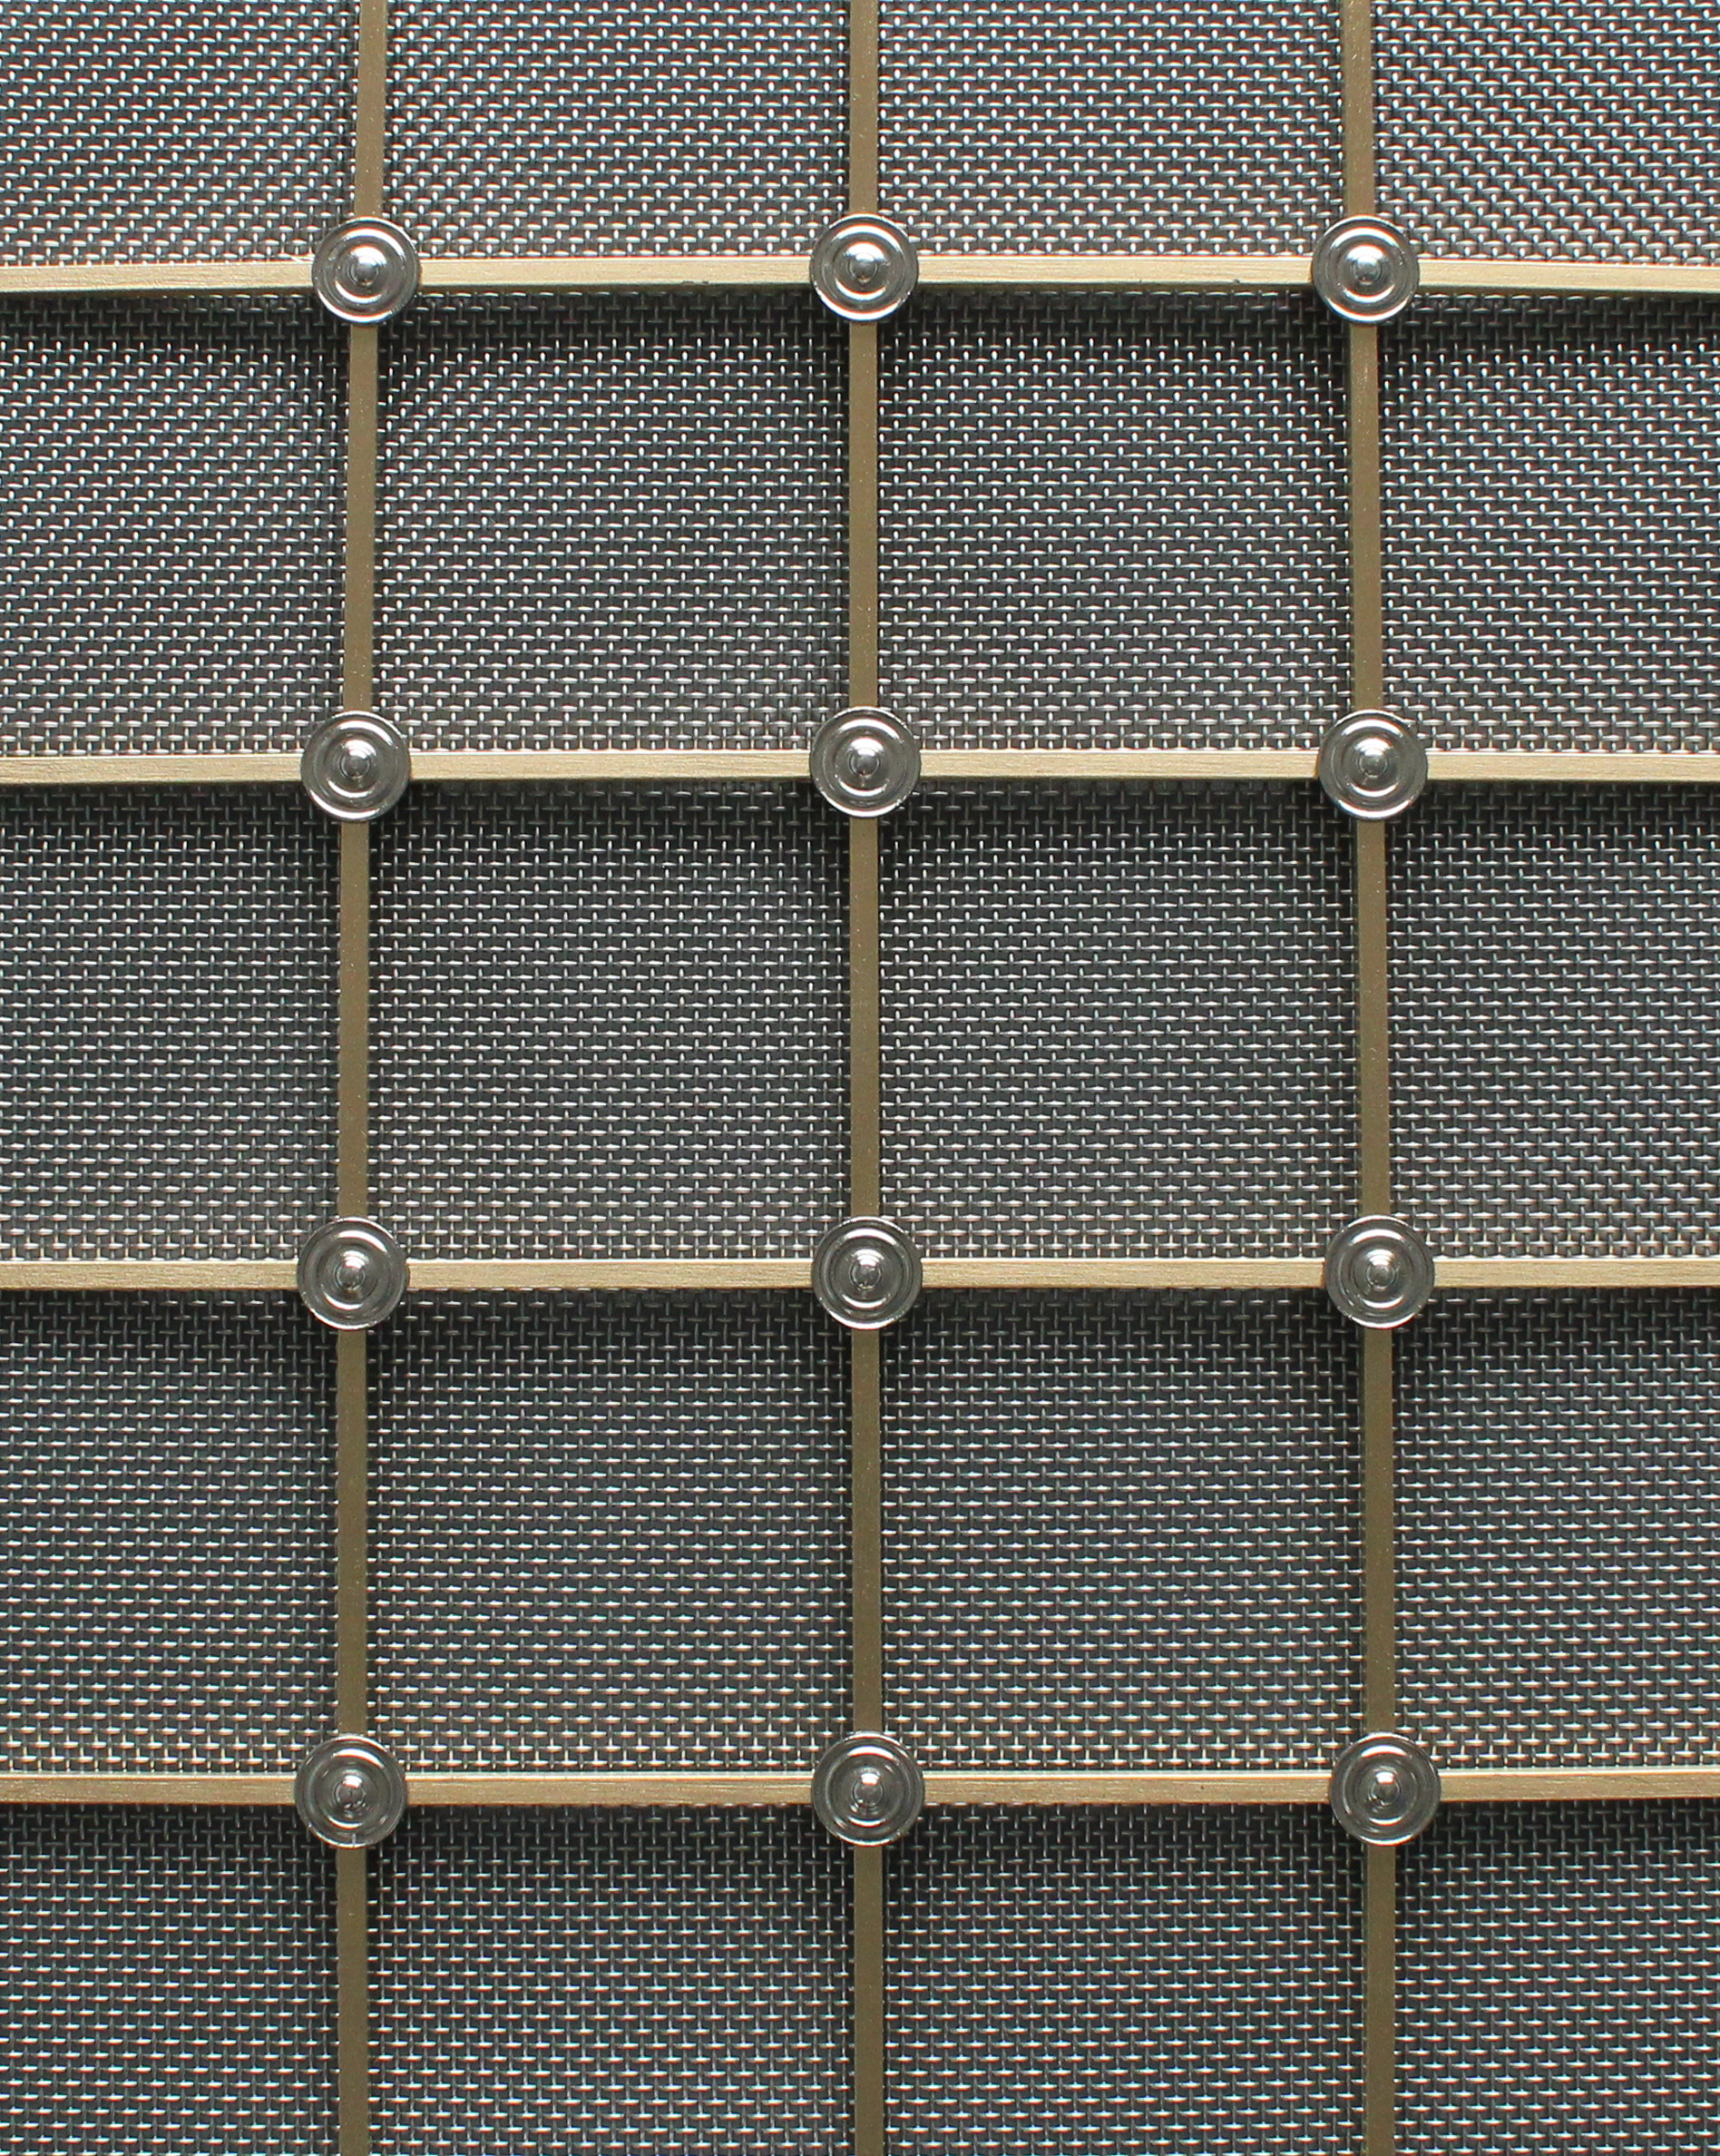 Large Square Grille (54mm)